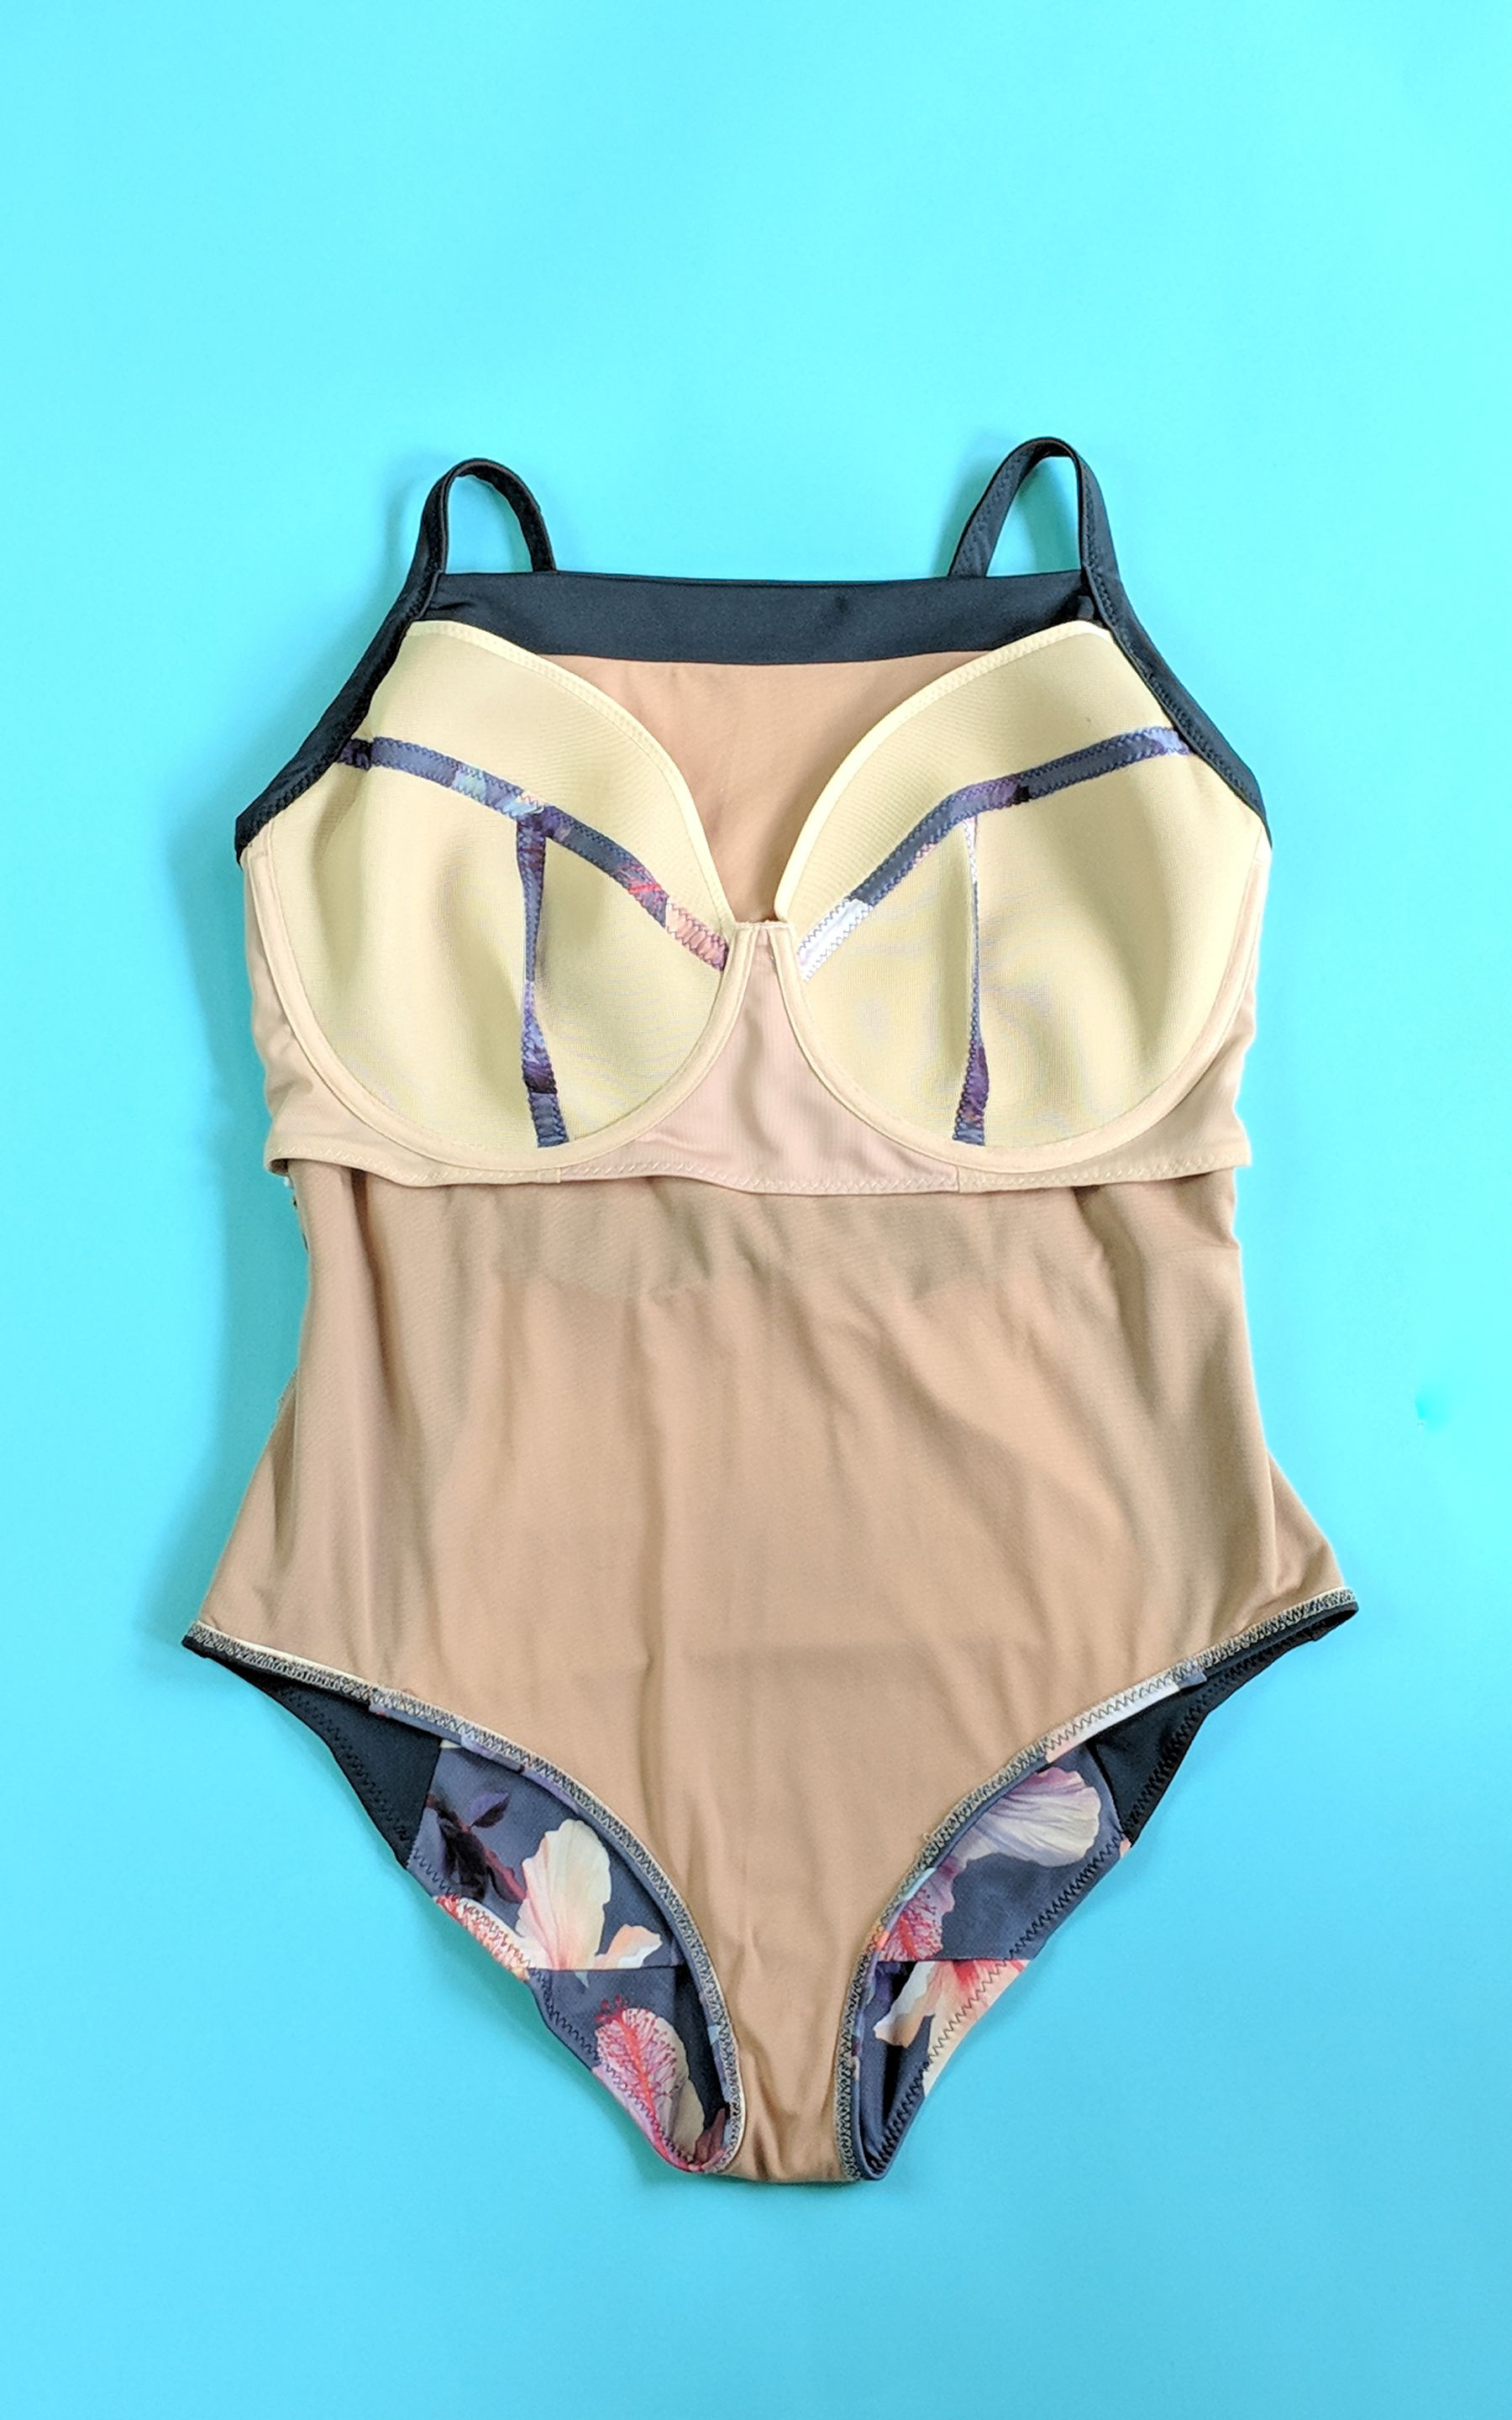 17dac0f7b434c The Cashmerette Ipswich Swimsuit Sewing Pattern is stylish AND supportive  thanks to a built-in underwired swim bra! Designed for curves in sizes 12 -  28